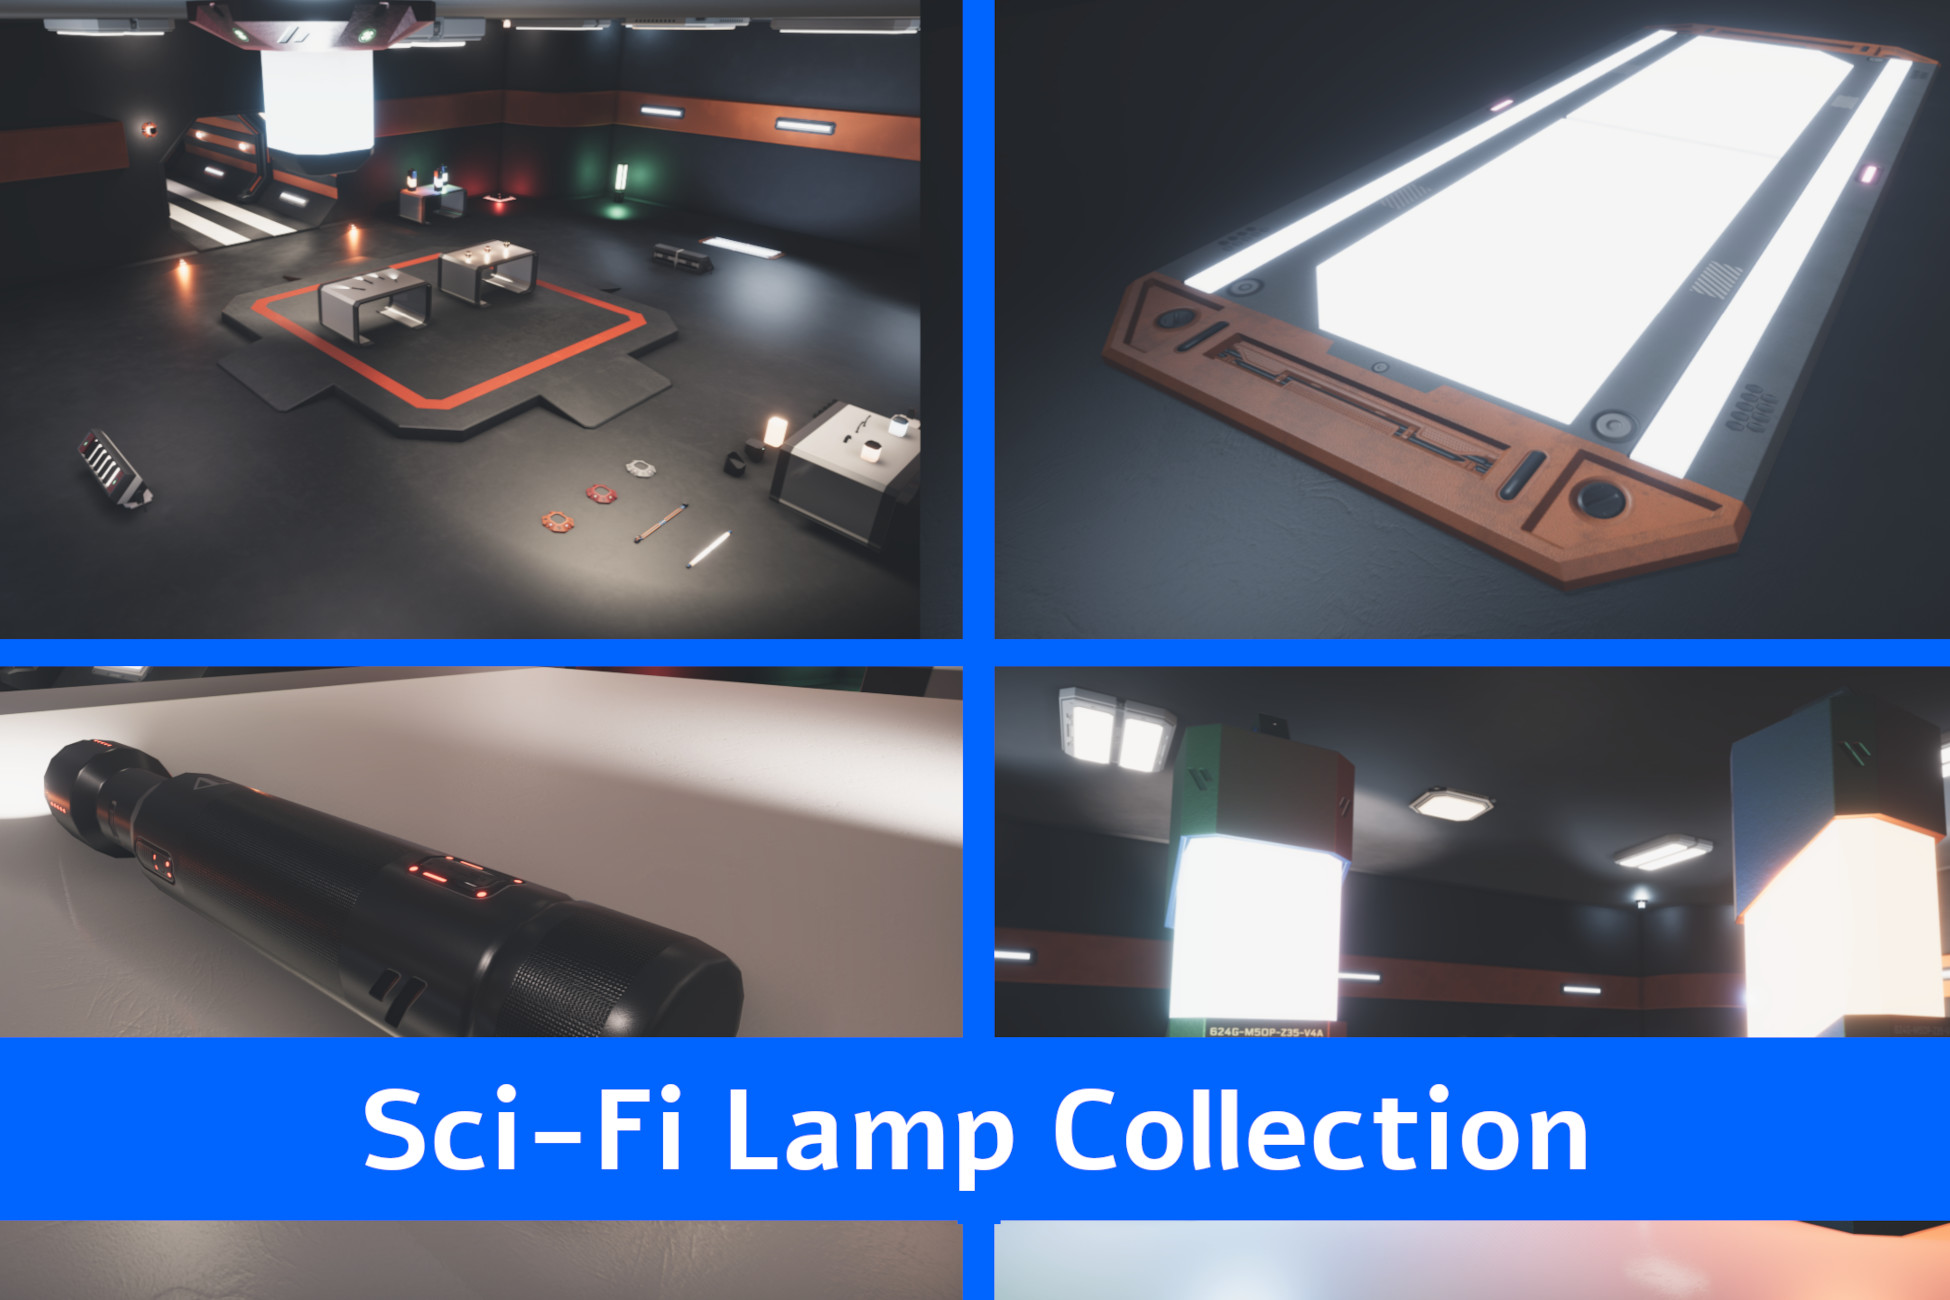 Sci-Fi Lamp Collection